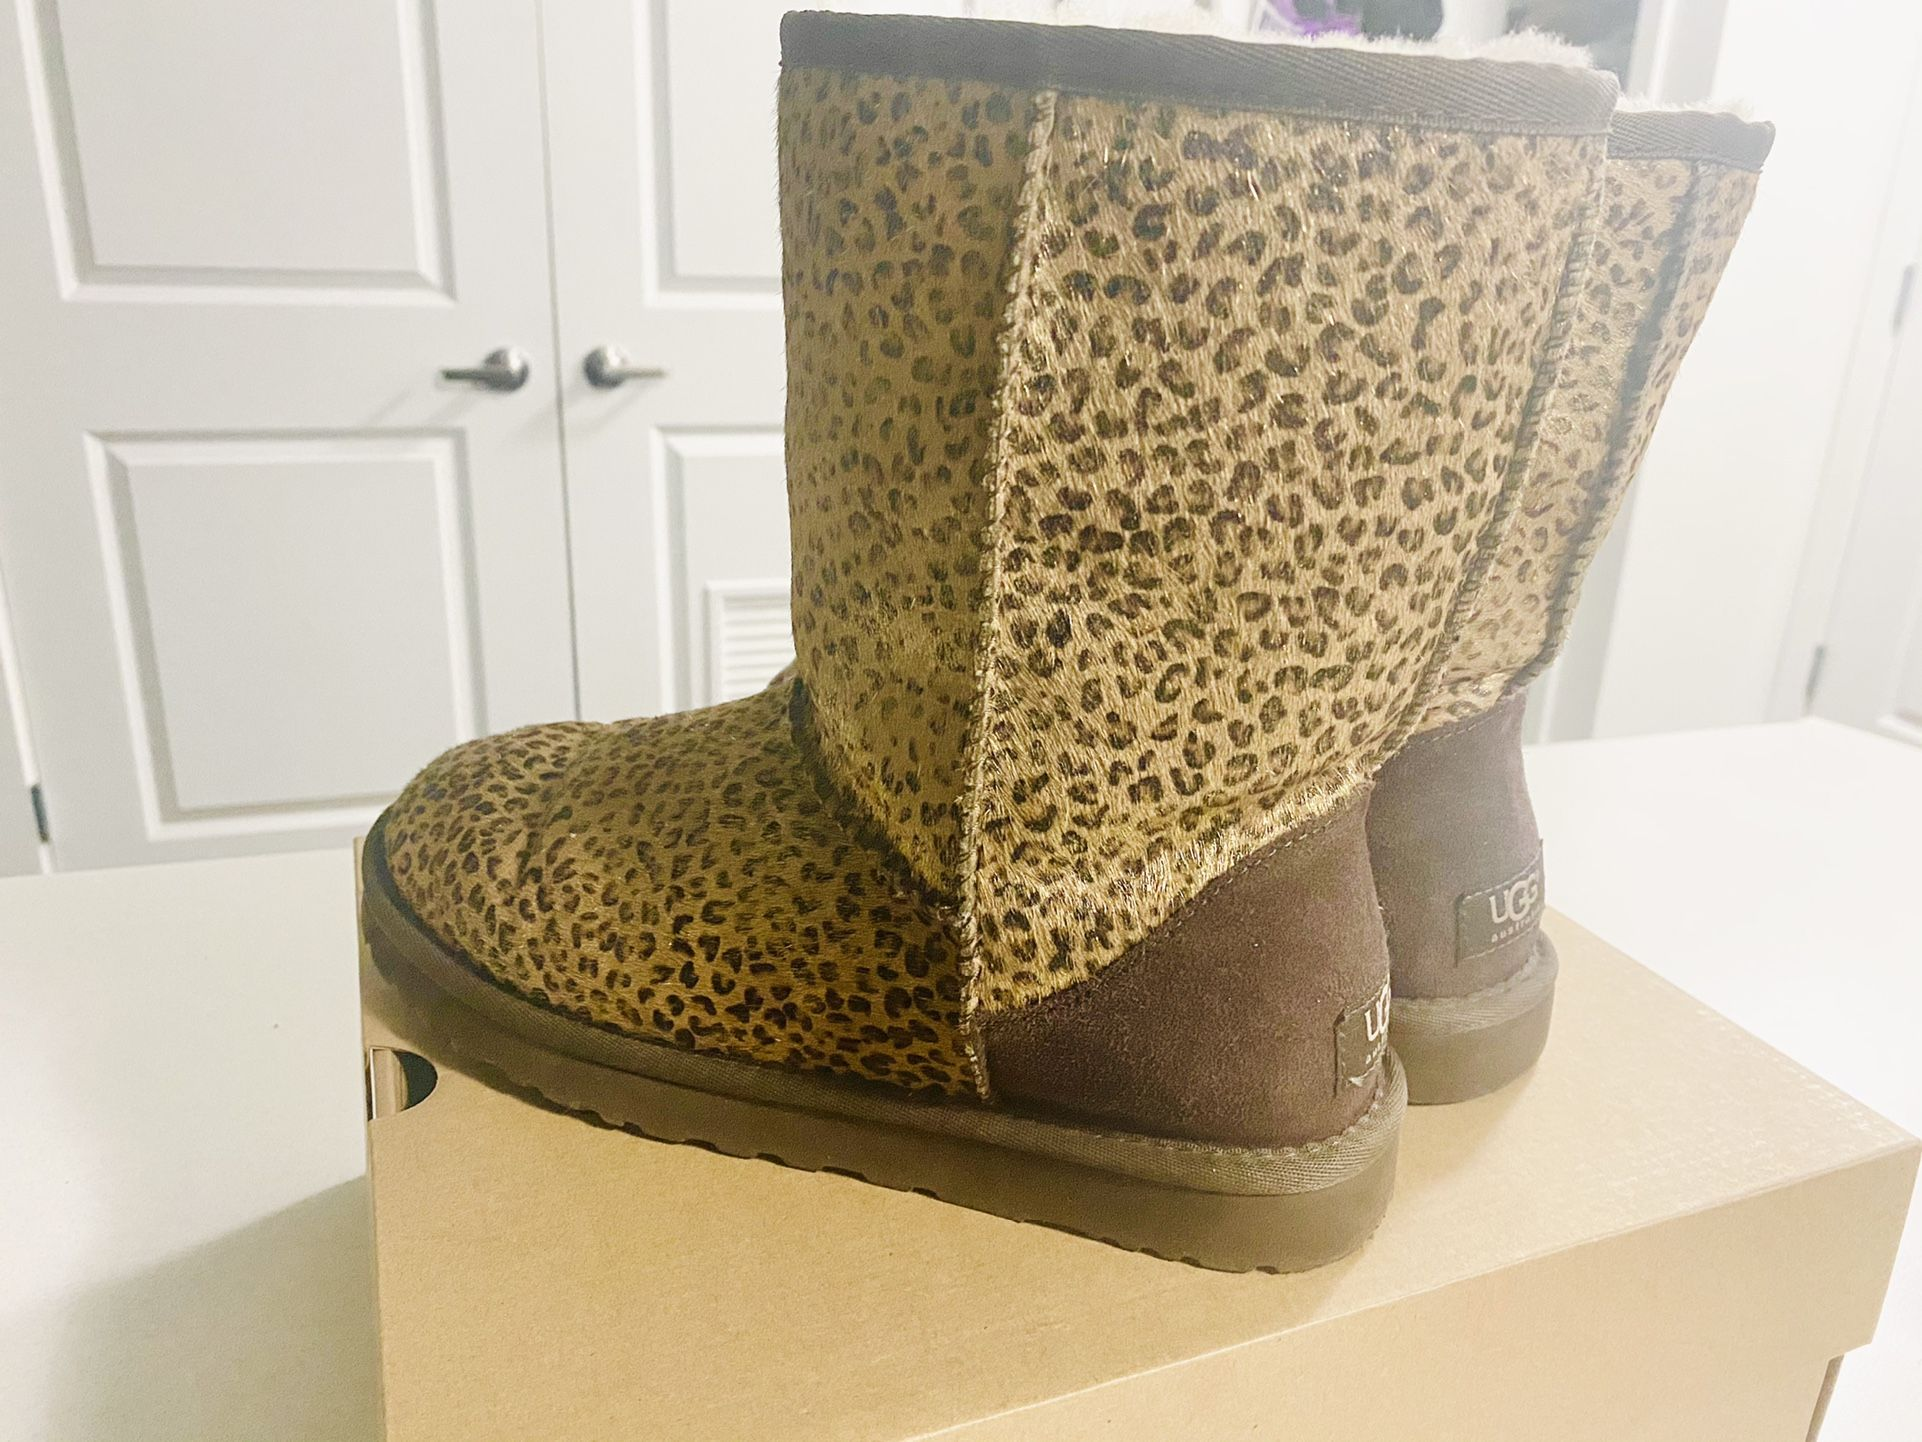 LIMITED EDITION GOLD LEOPARD UGG BOOTS SIZE 8 Women